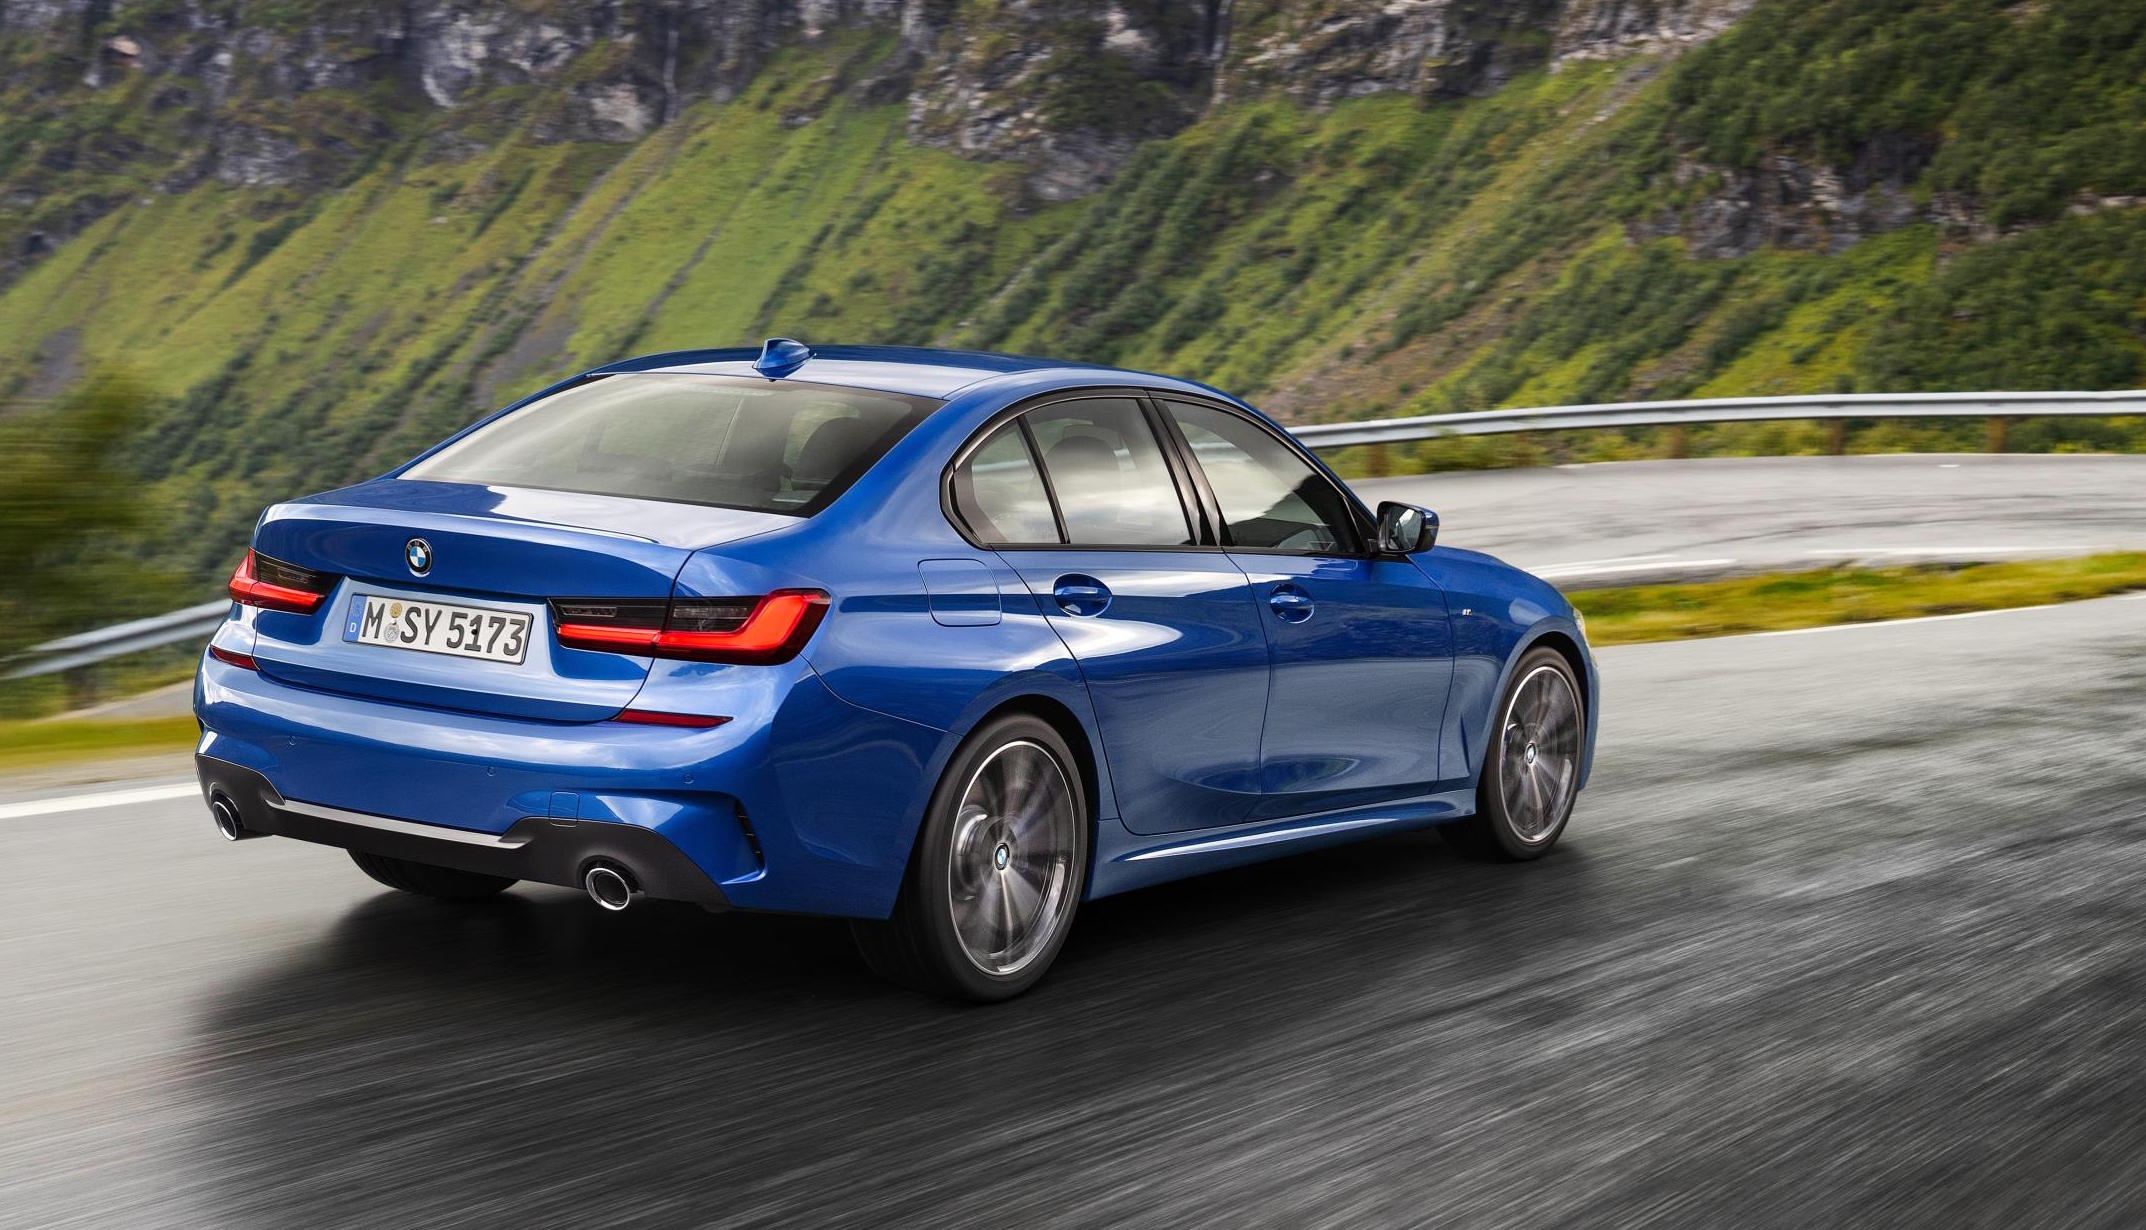 BMW M boss confirms S58 engine for new M3, reveals outputs